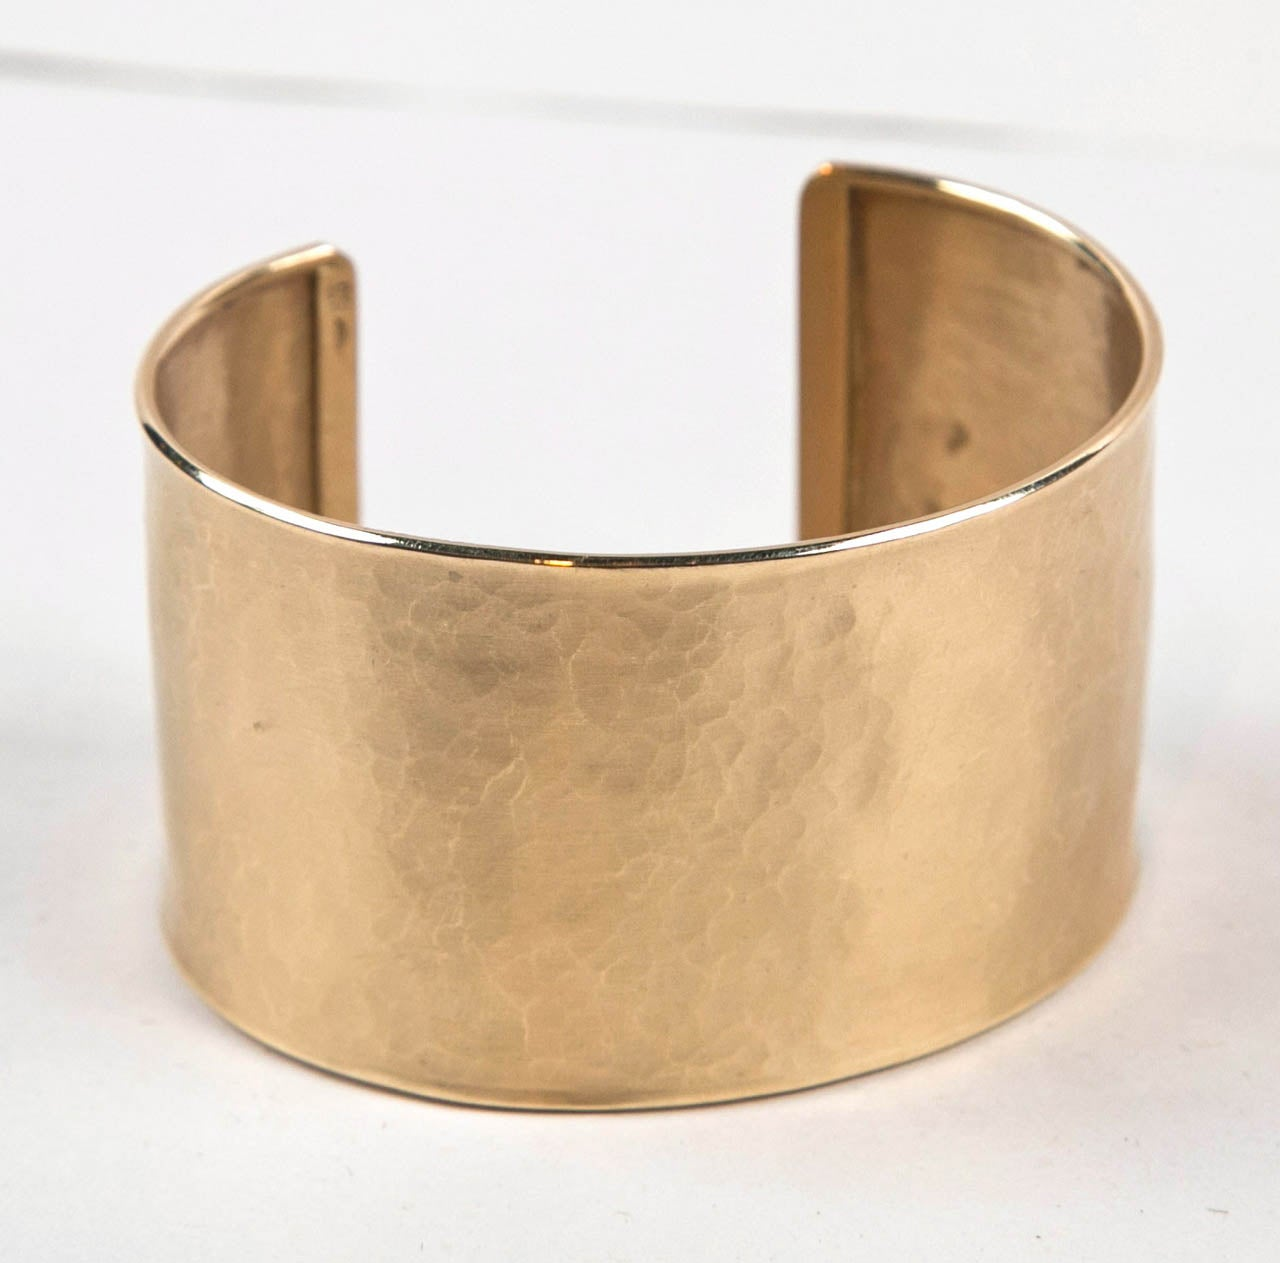 Handmade Pounded Gold Cuff Bracelet Presented by Jewelry and Such 6